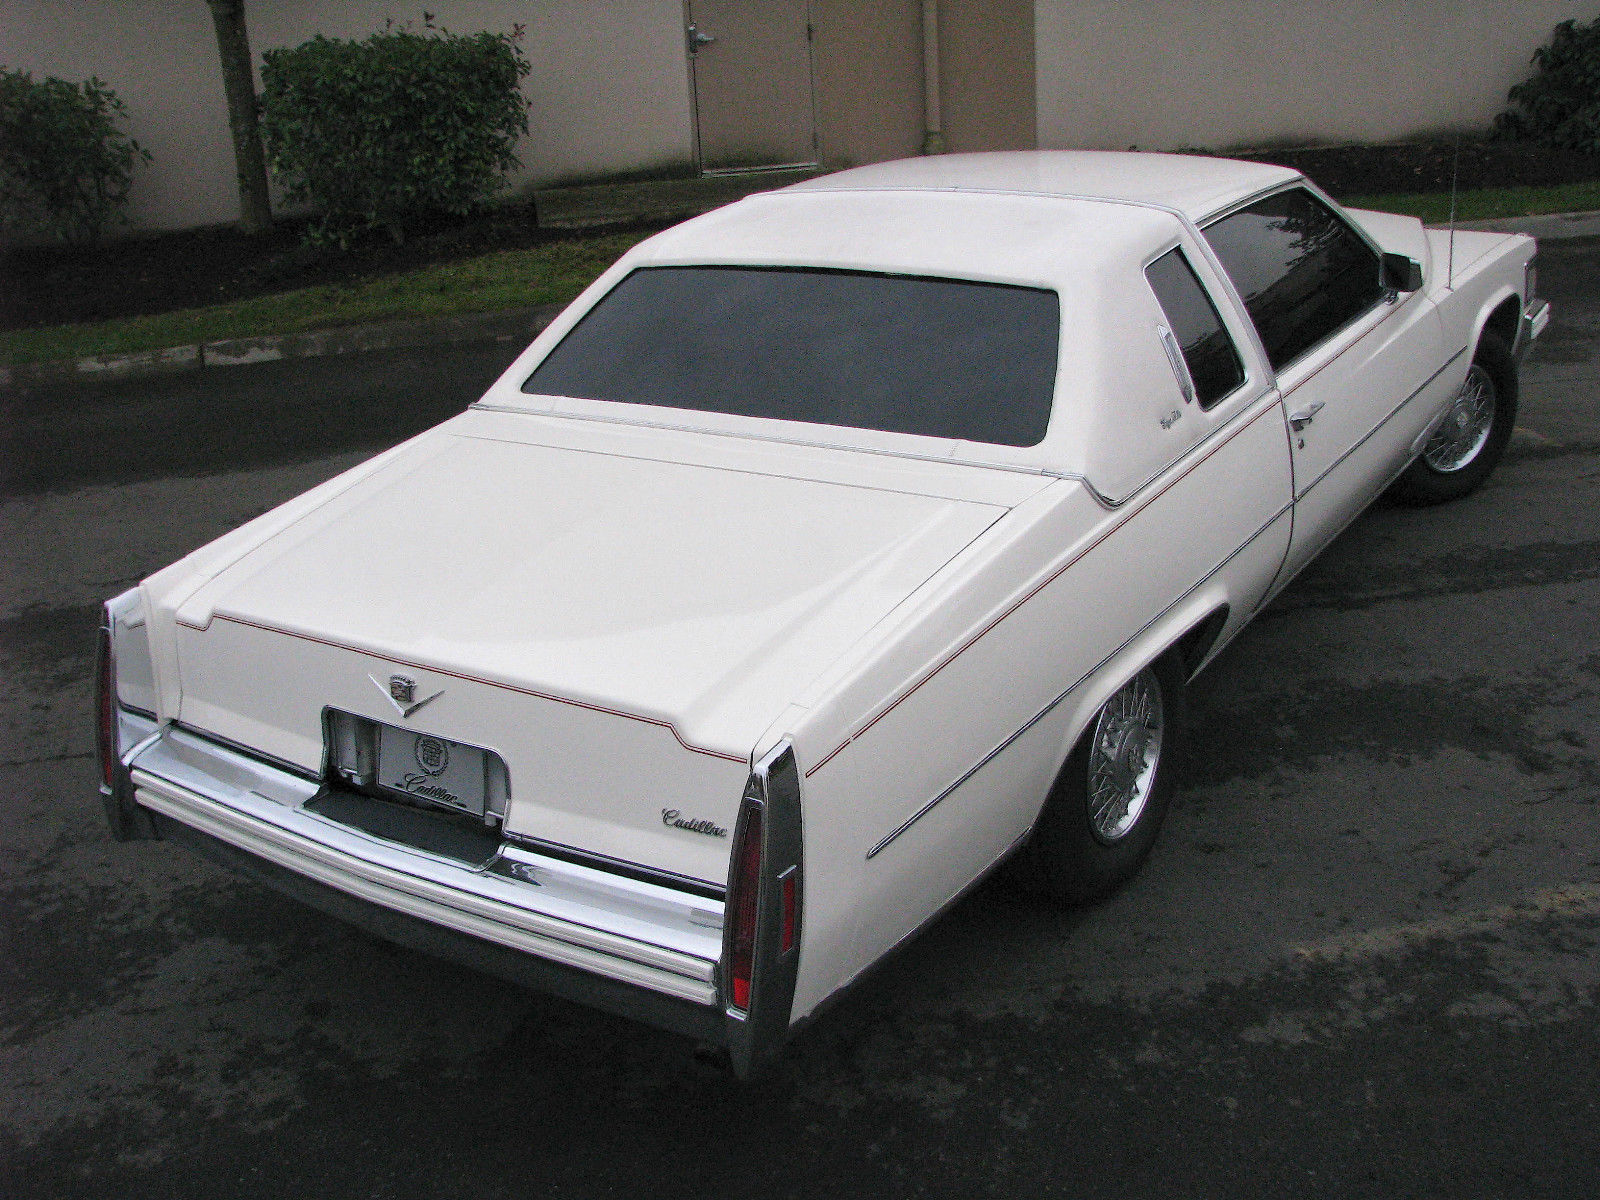 1978 Cadillac Coupe Deville Clean Vintgage Boulavard Cruiser For Interior